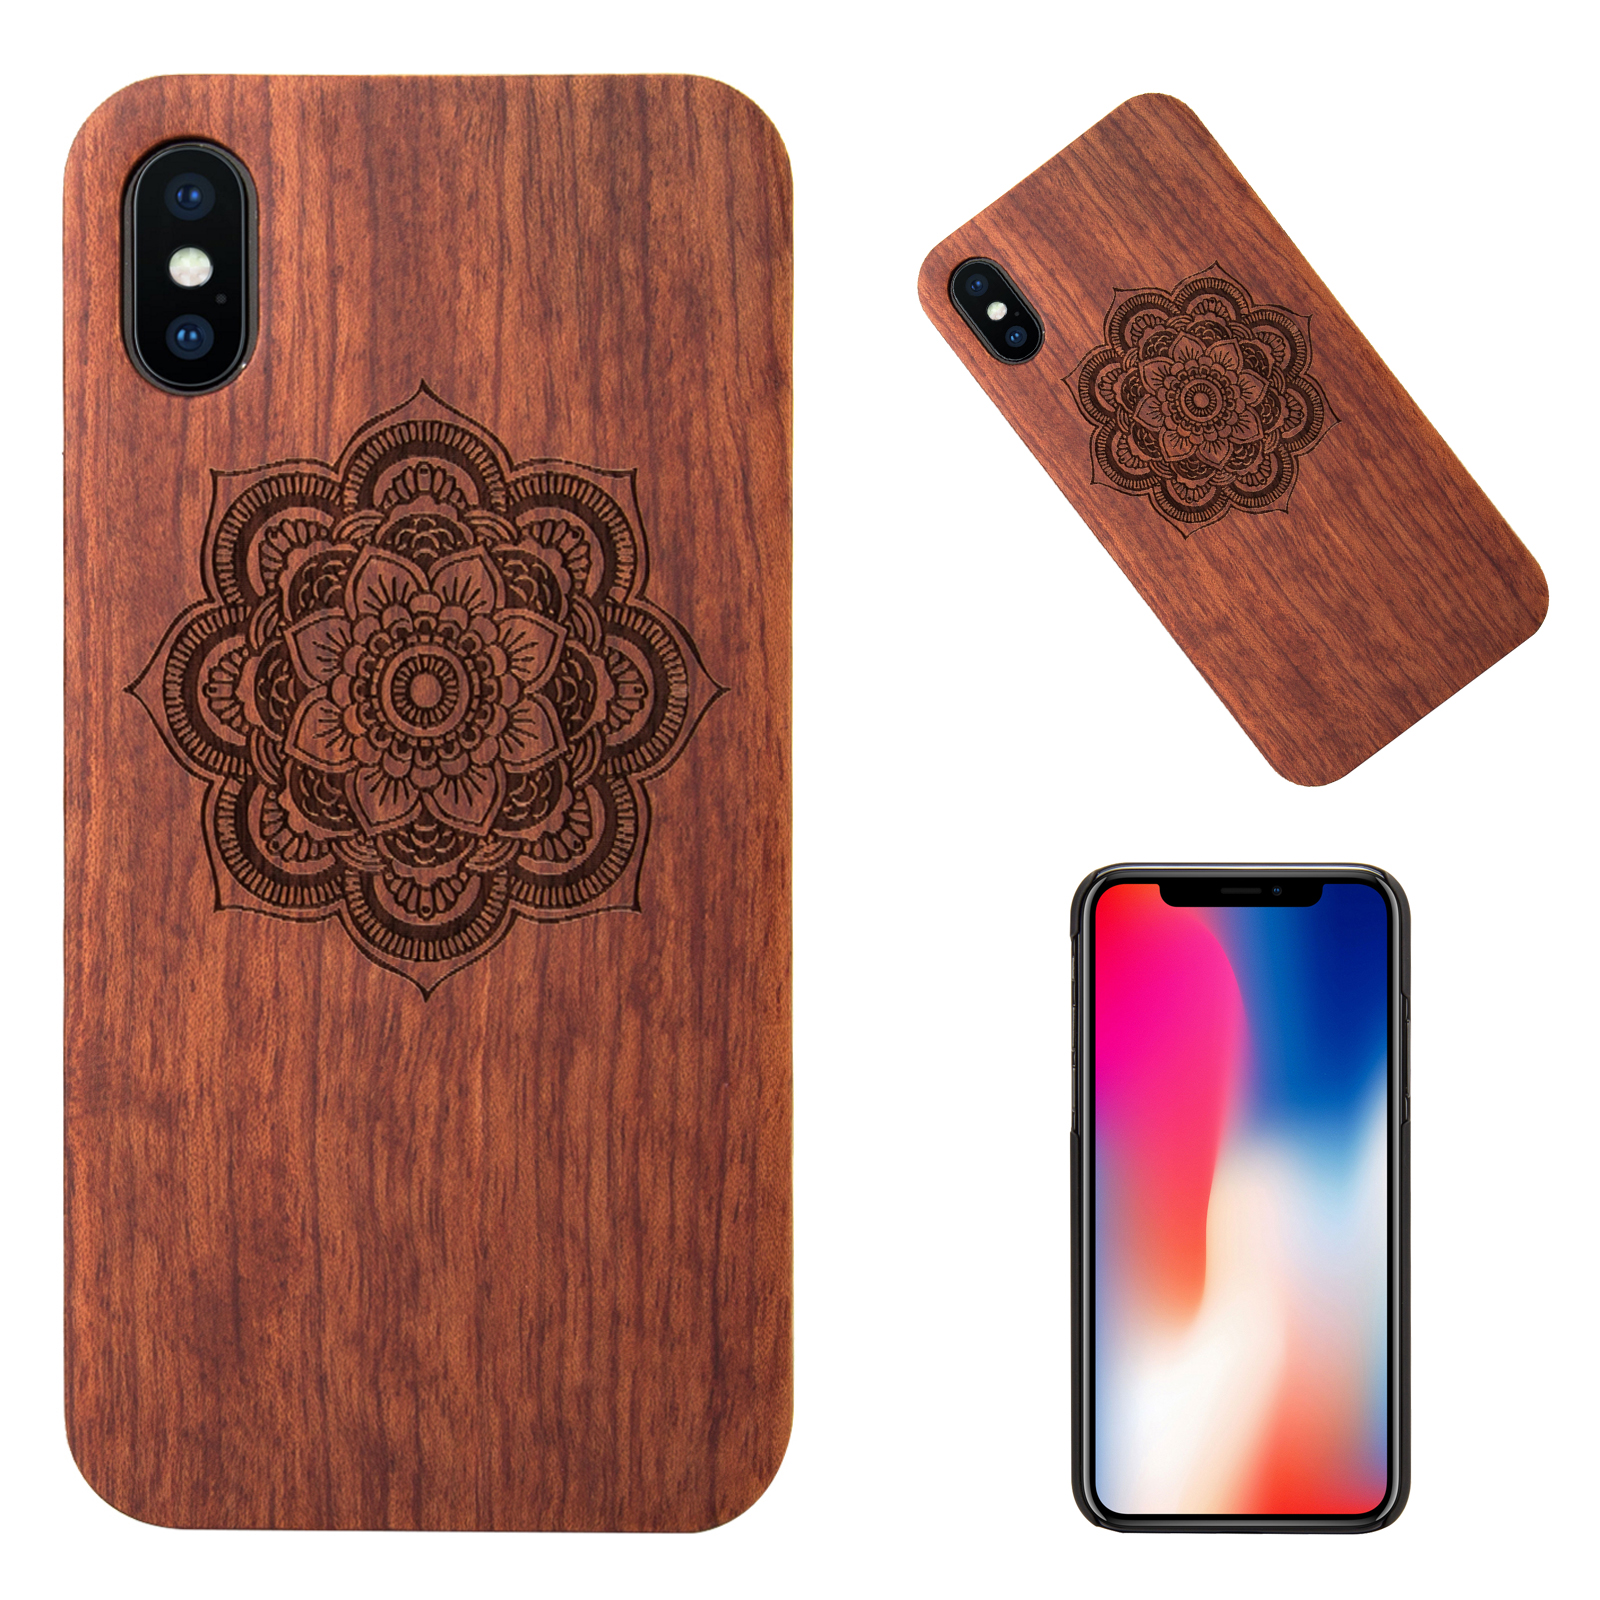 100-Natural-Wooden-Wood-PC-Phone-Hard-Back-Case-Cover-Skin-For-Apple-iPhone-X